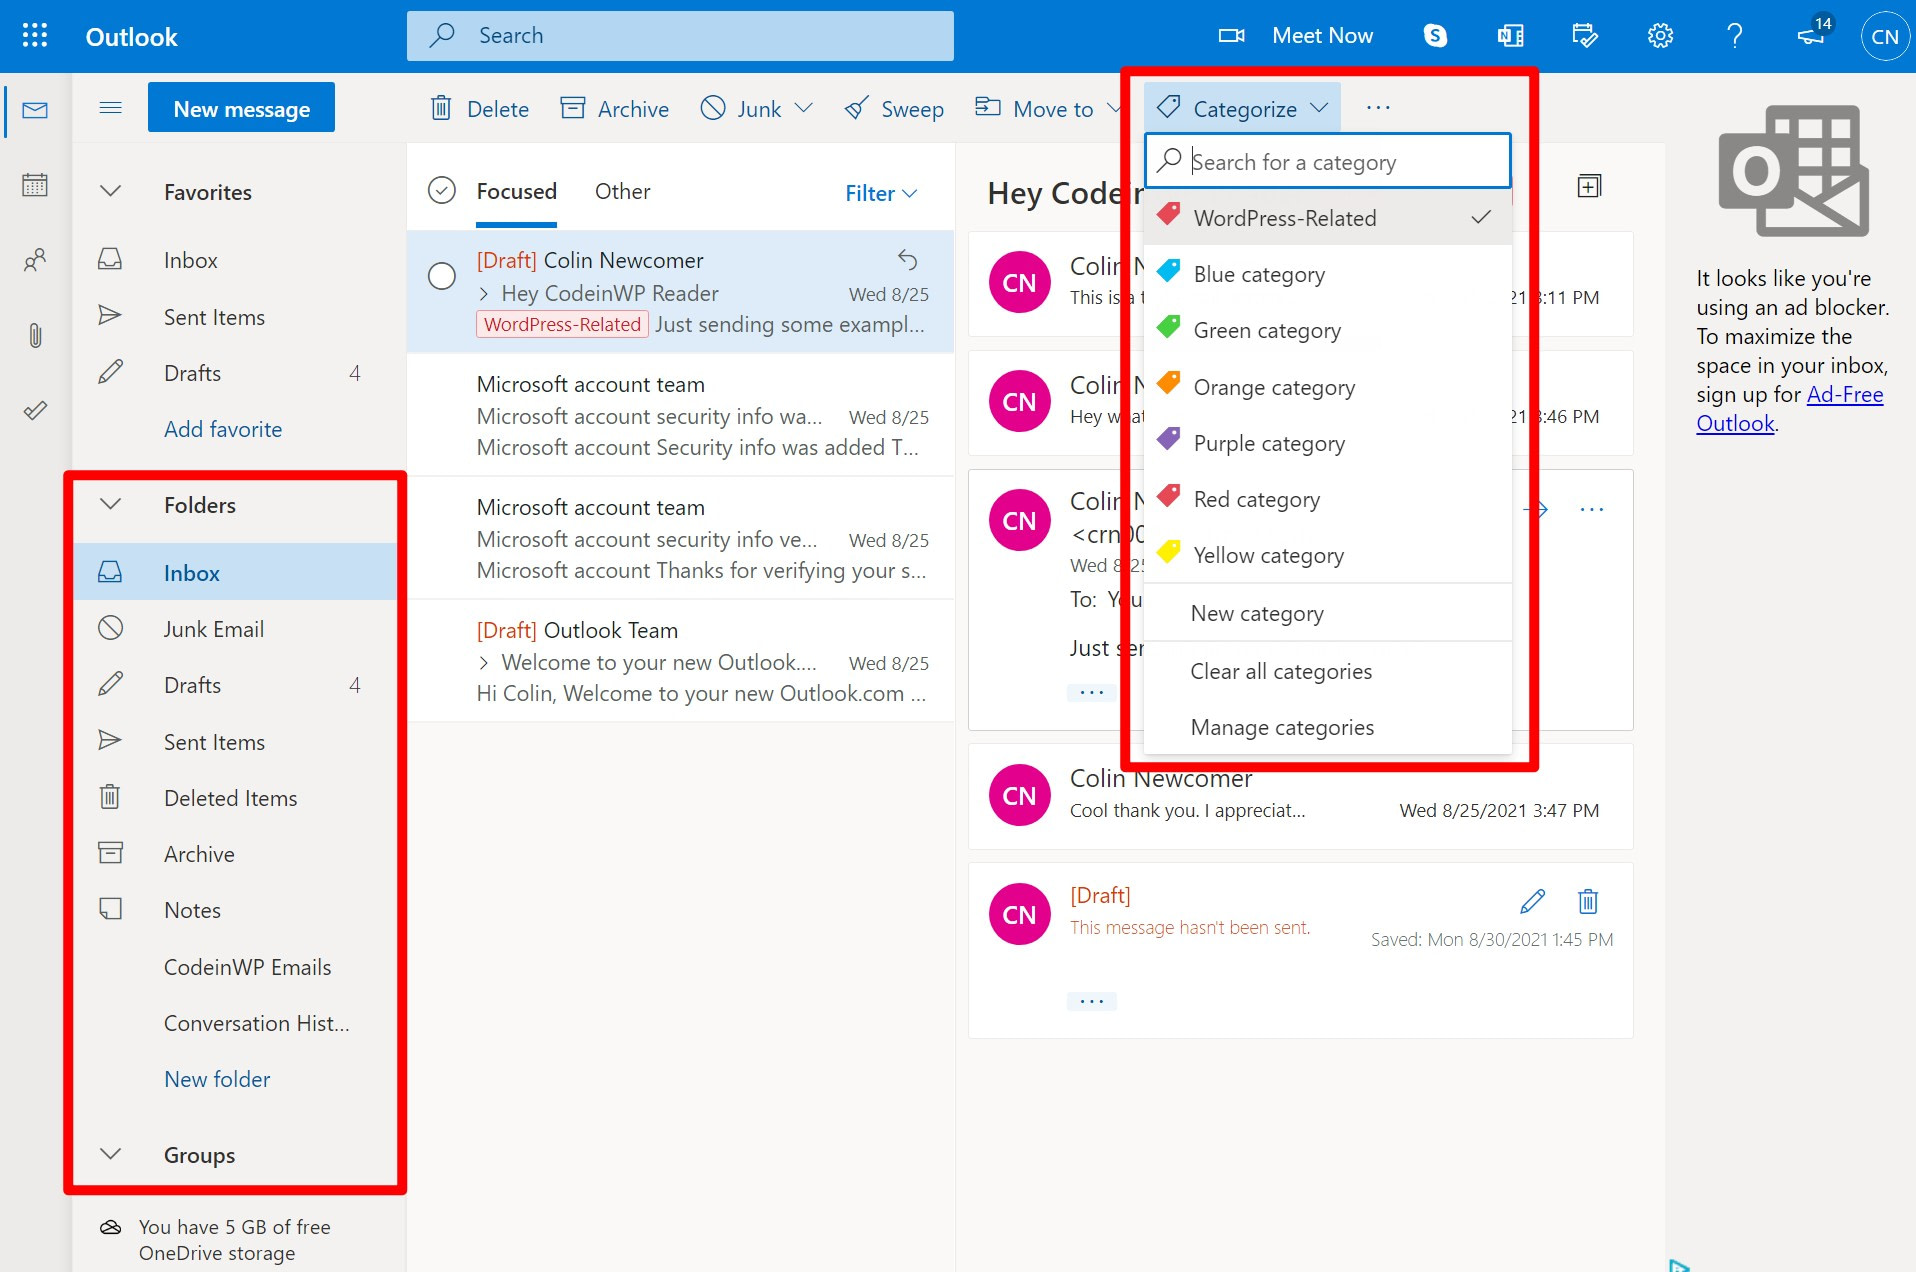 Outlook categories and folders